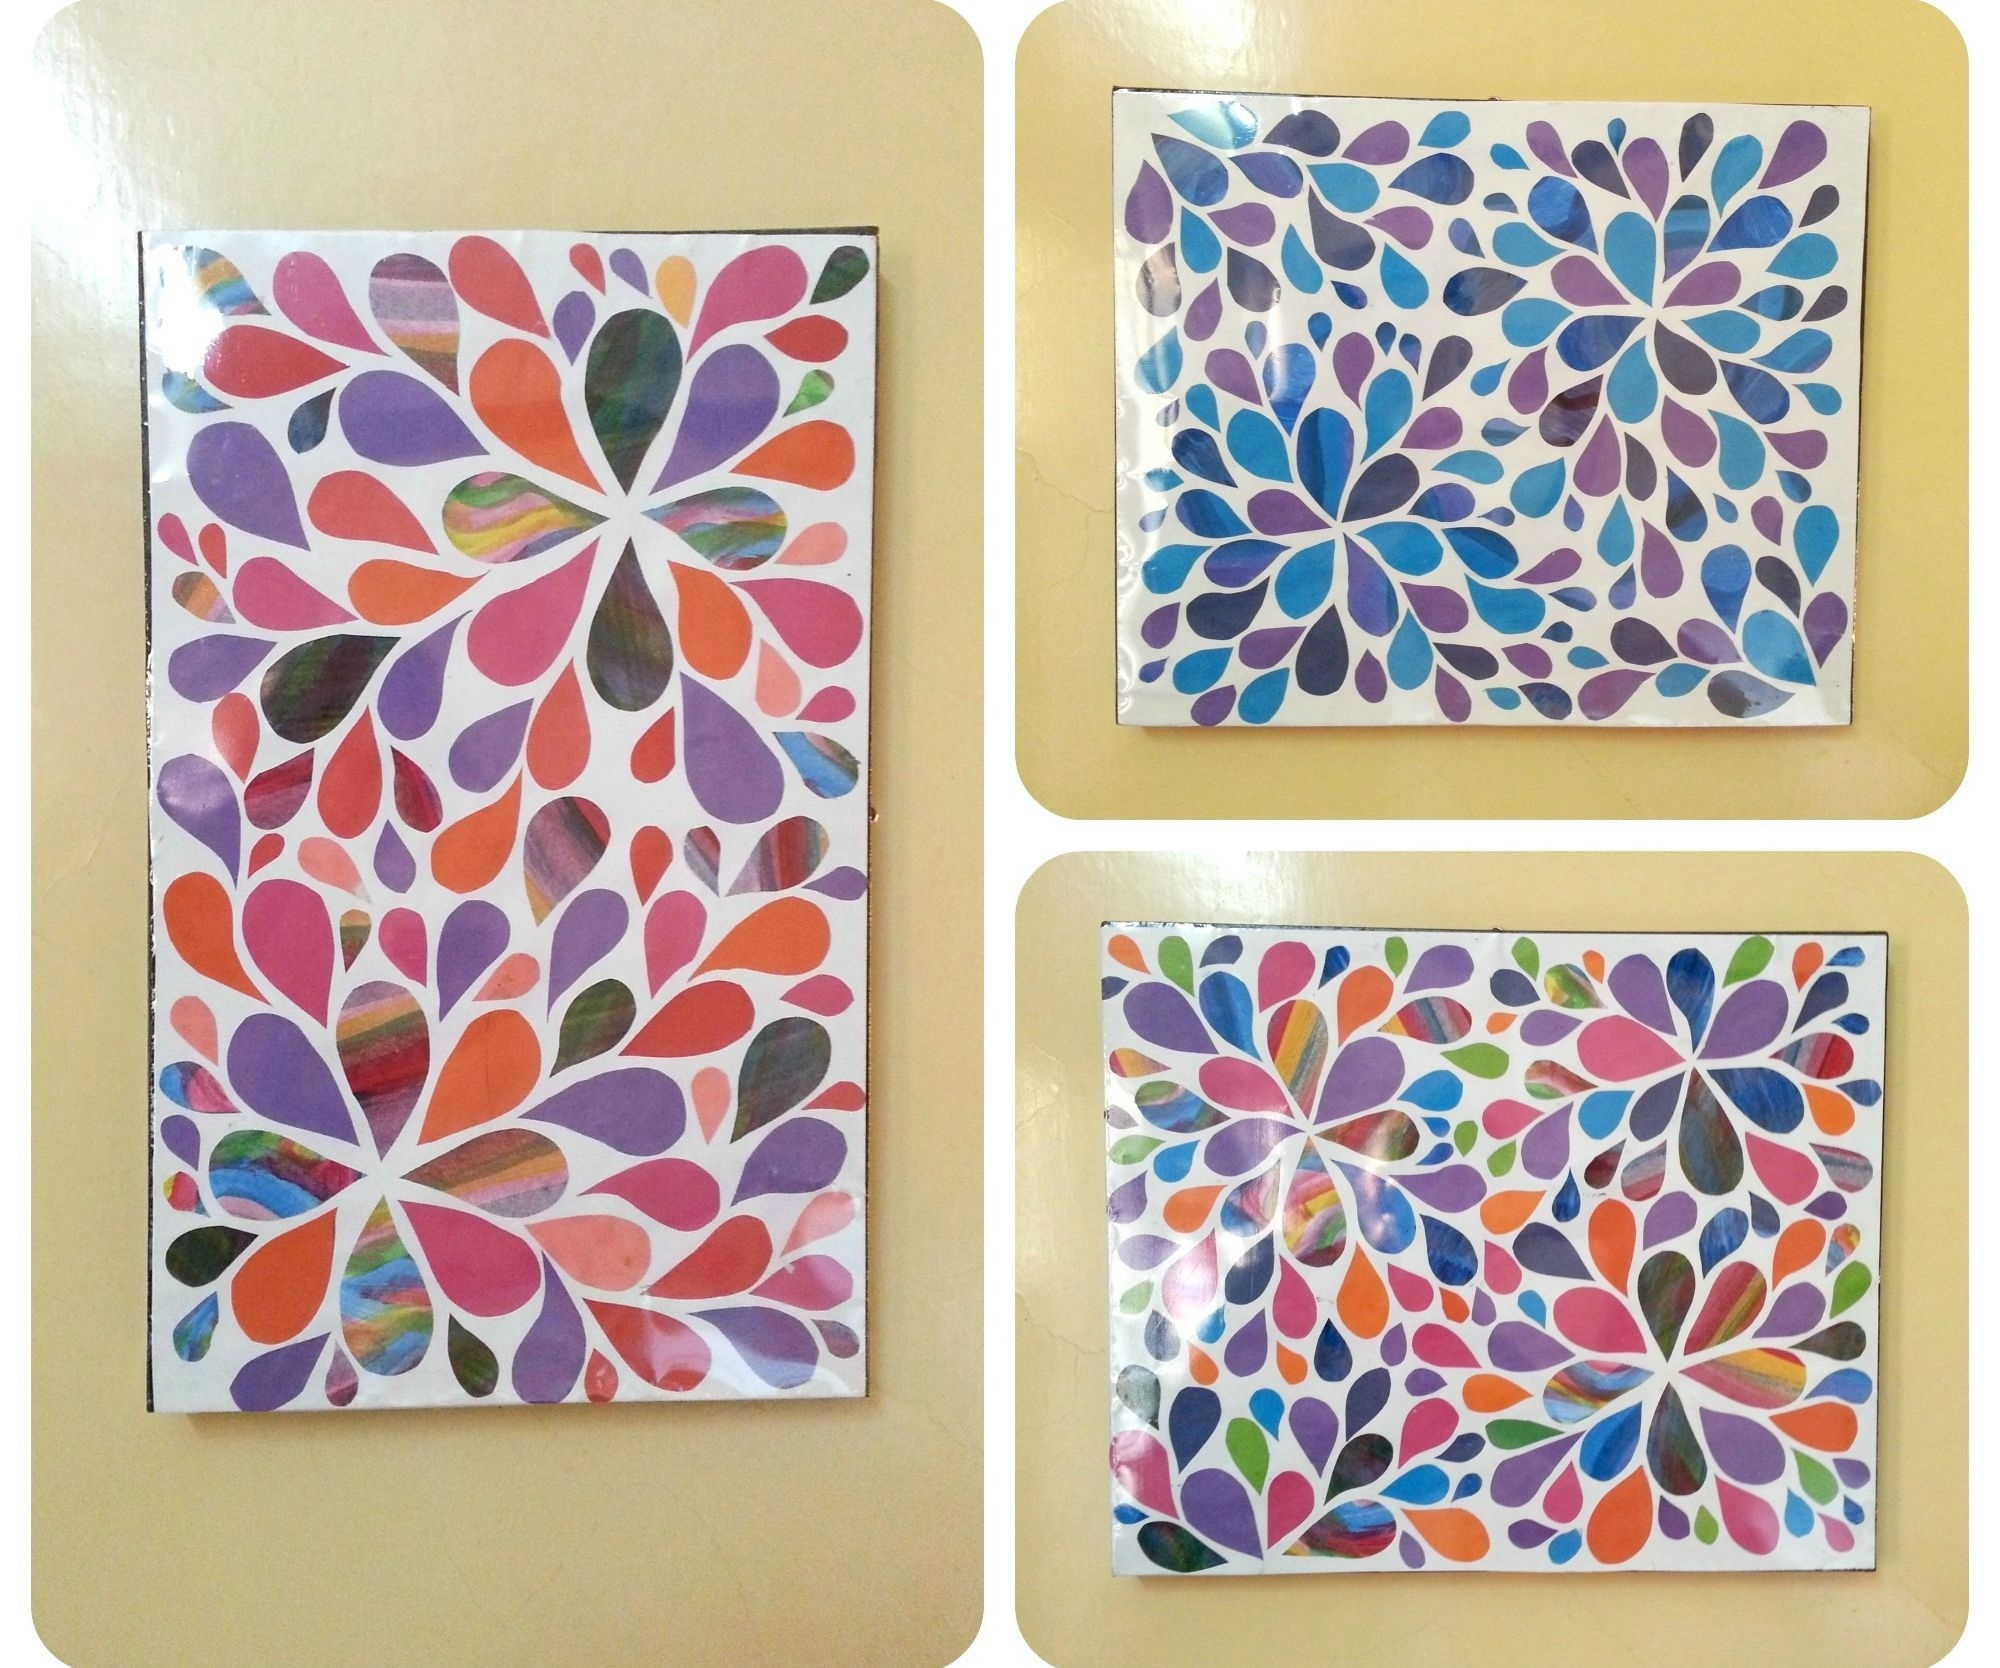 Diy Paper Crafts In Latest Paper Wall Art (View 11 of 20)